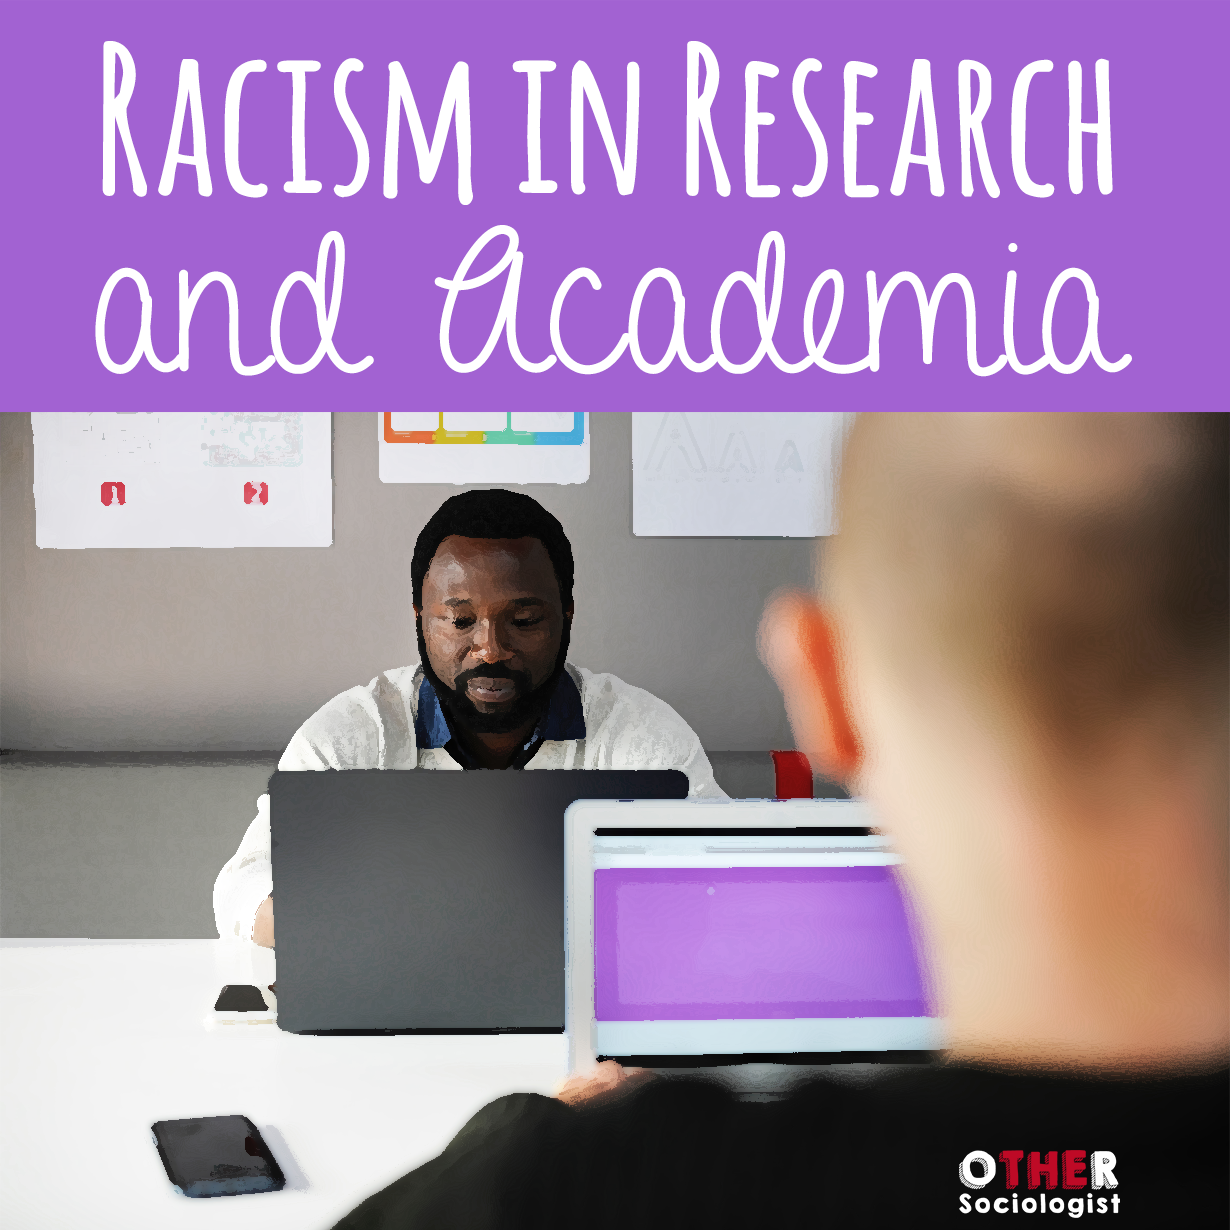 Racism in Research and Academia